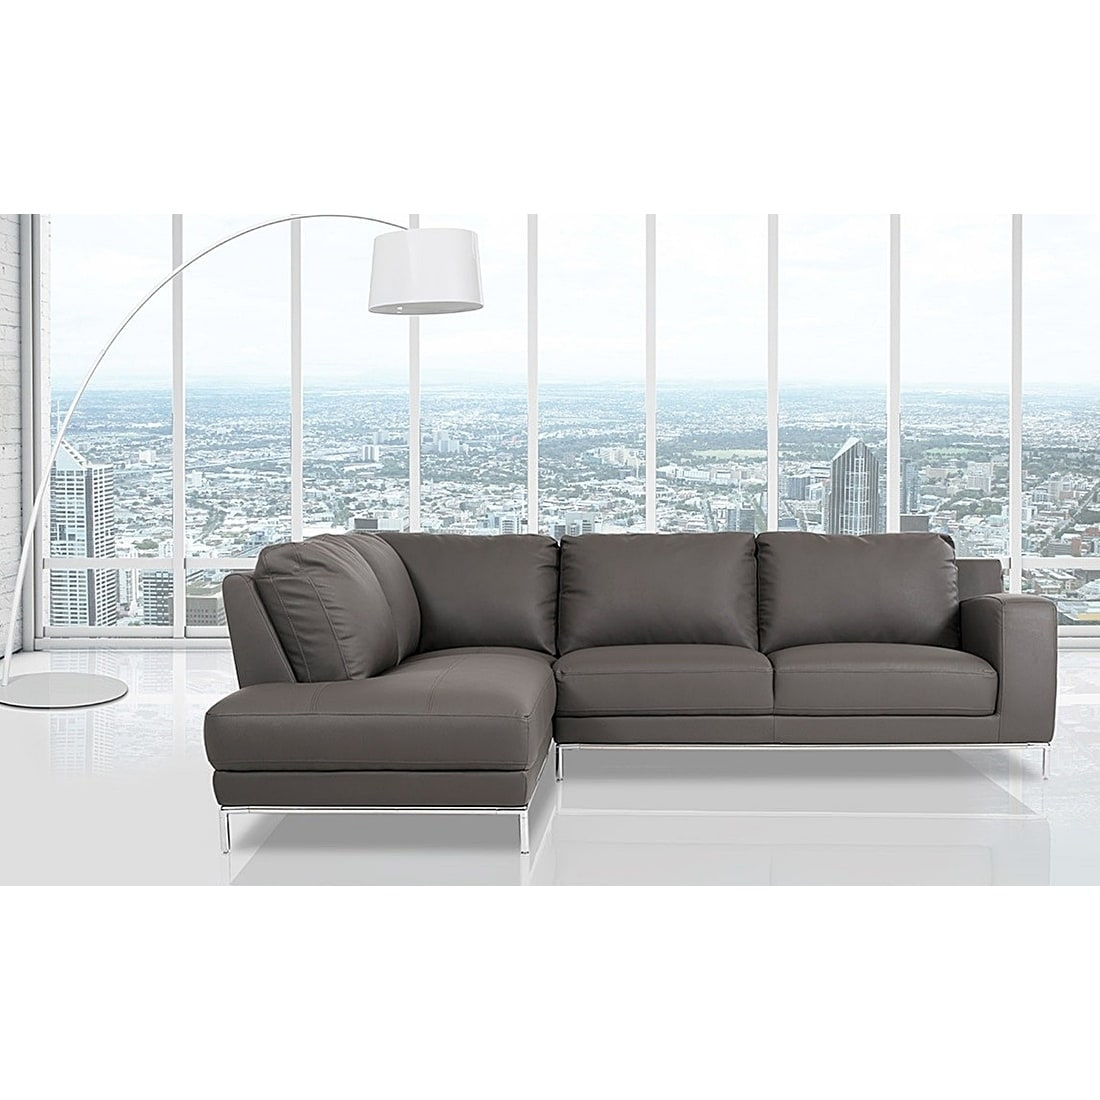 Shop elmhurst modern dark grey leather sofa with left facing chaise ships to canada overstock 19661224